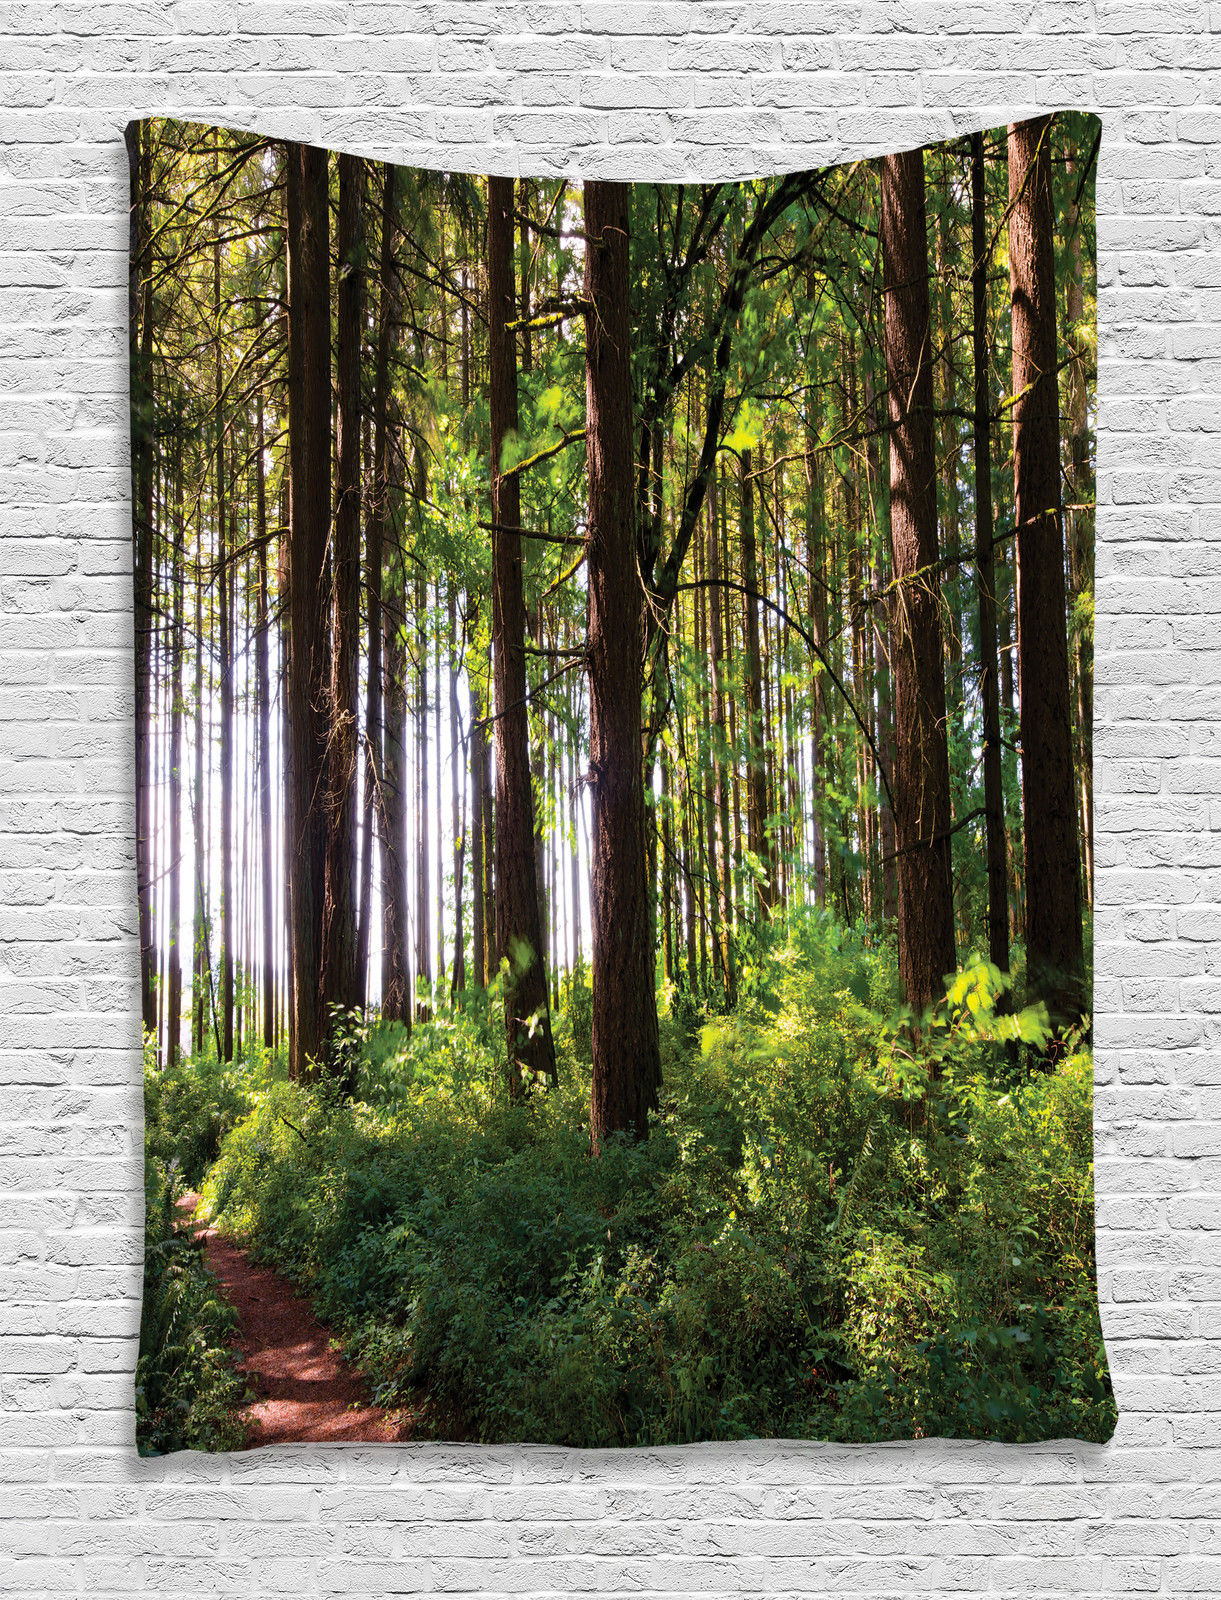 Farm House Decor Wall Hanging Tapestry, Pathway In A Shady Forest Of Bushes And Thick Trunks Grass Unique Wild Life... by Kozmos